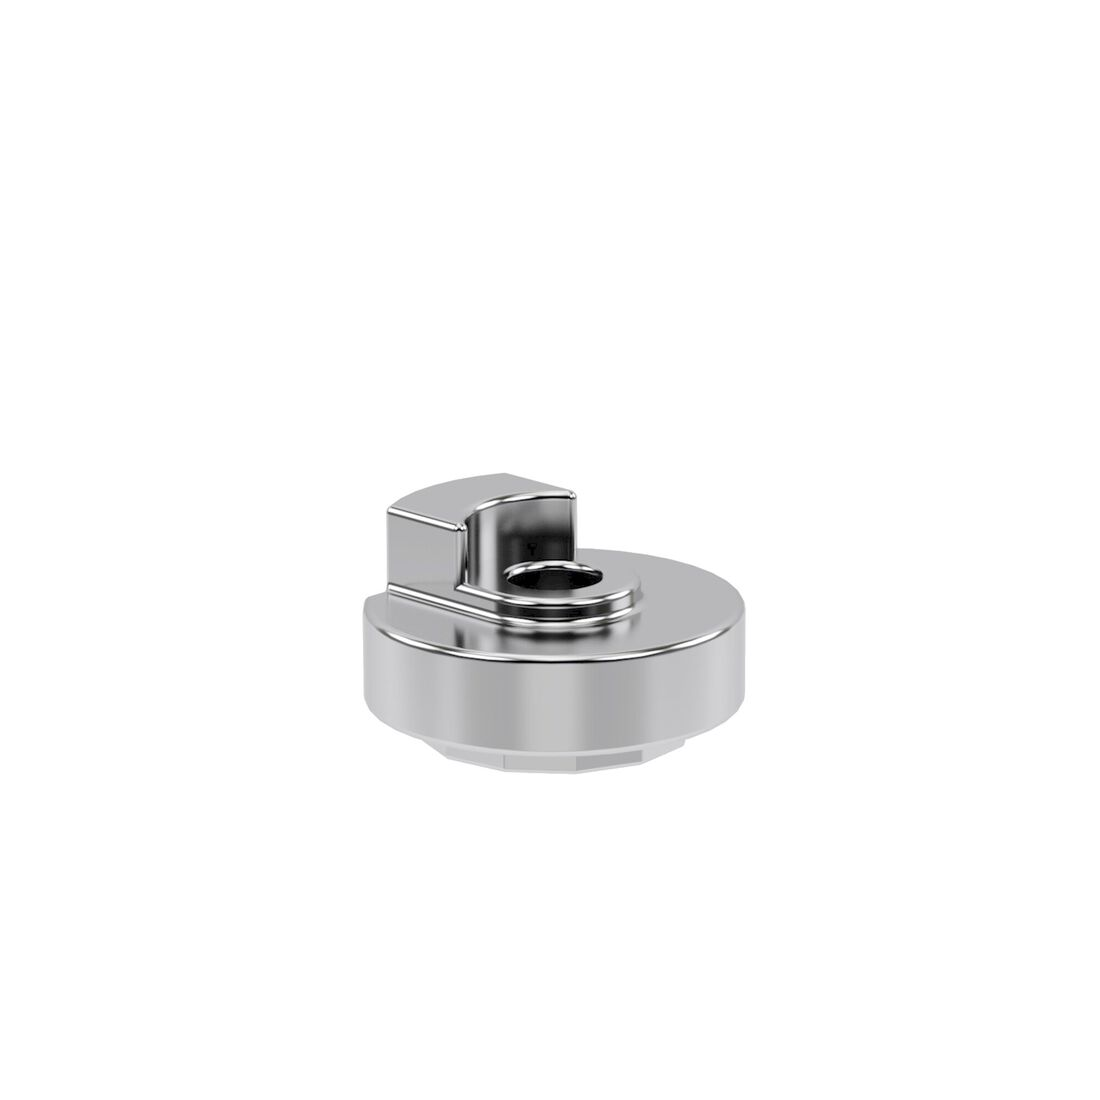 CYBEX Spacer For Quick Release Skewer 6 mm in Silver - 6mm large image number 1